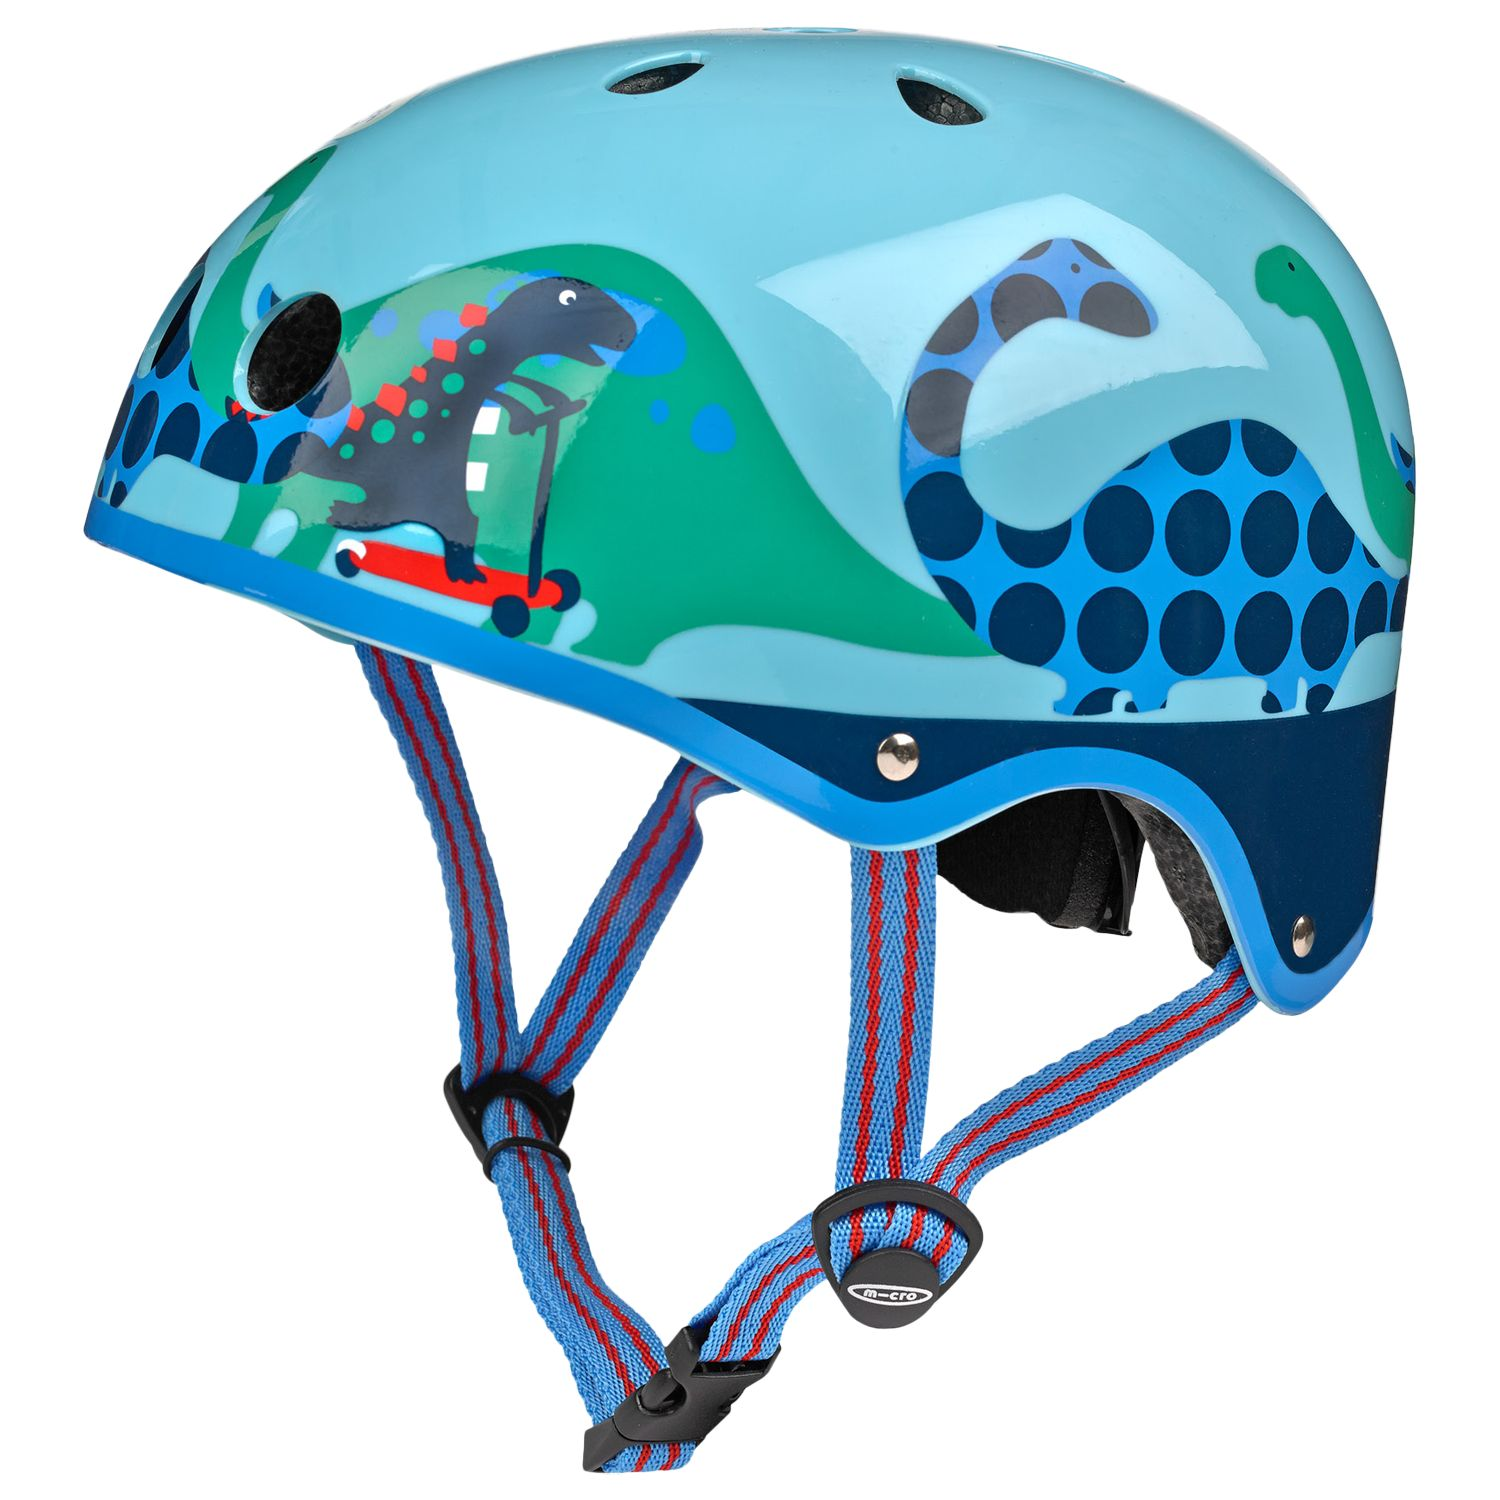 Micro Micro Scooter Scootersaurus Safety Helmet, Medium